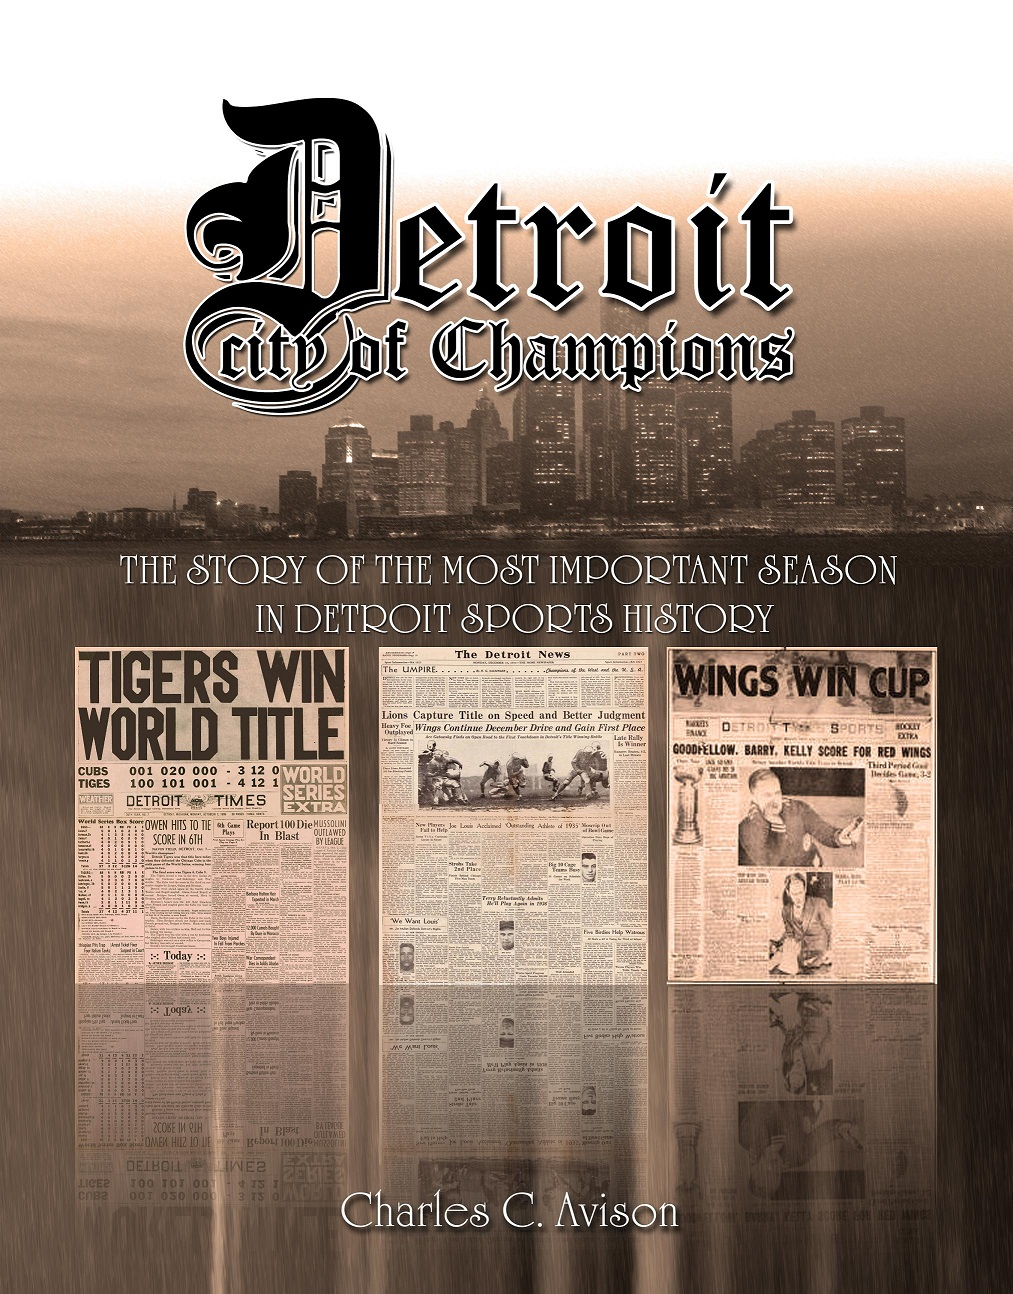 Book I: Detroit City of Champions: The Story of the Most Important Season in Detroit Sports History